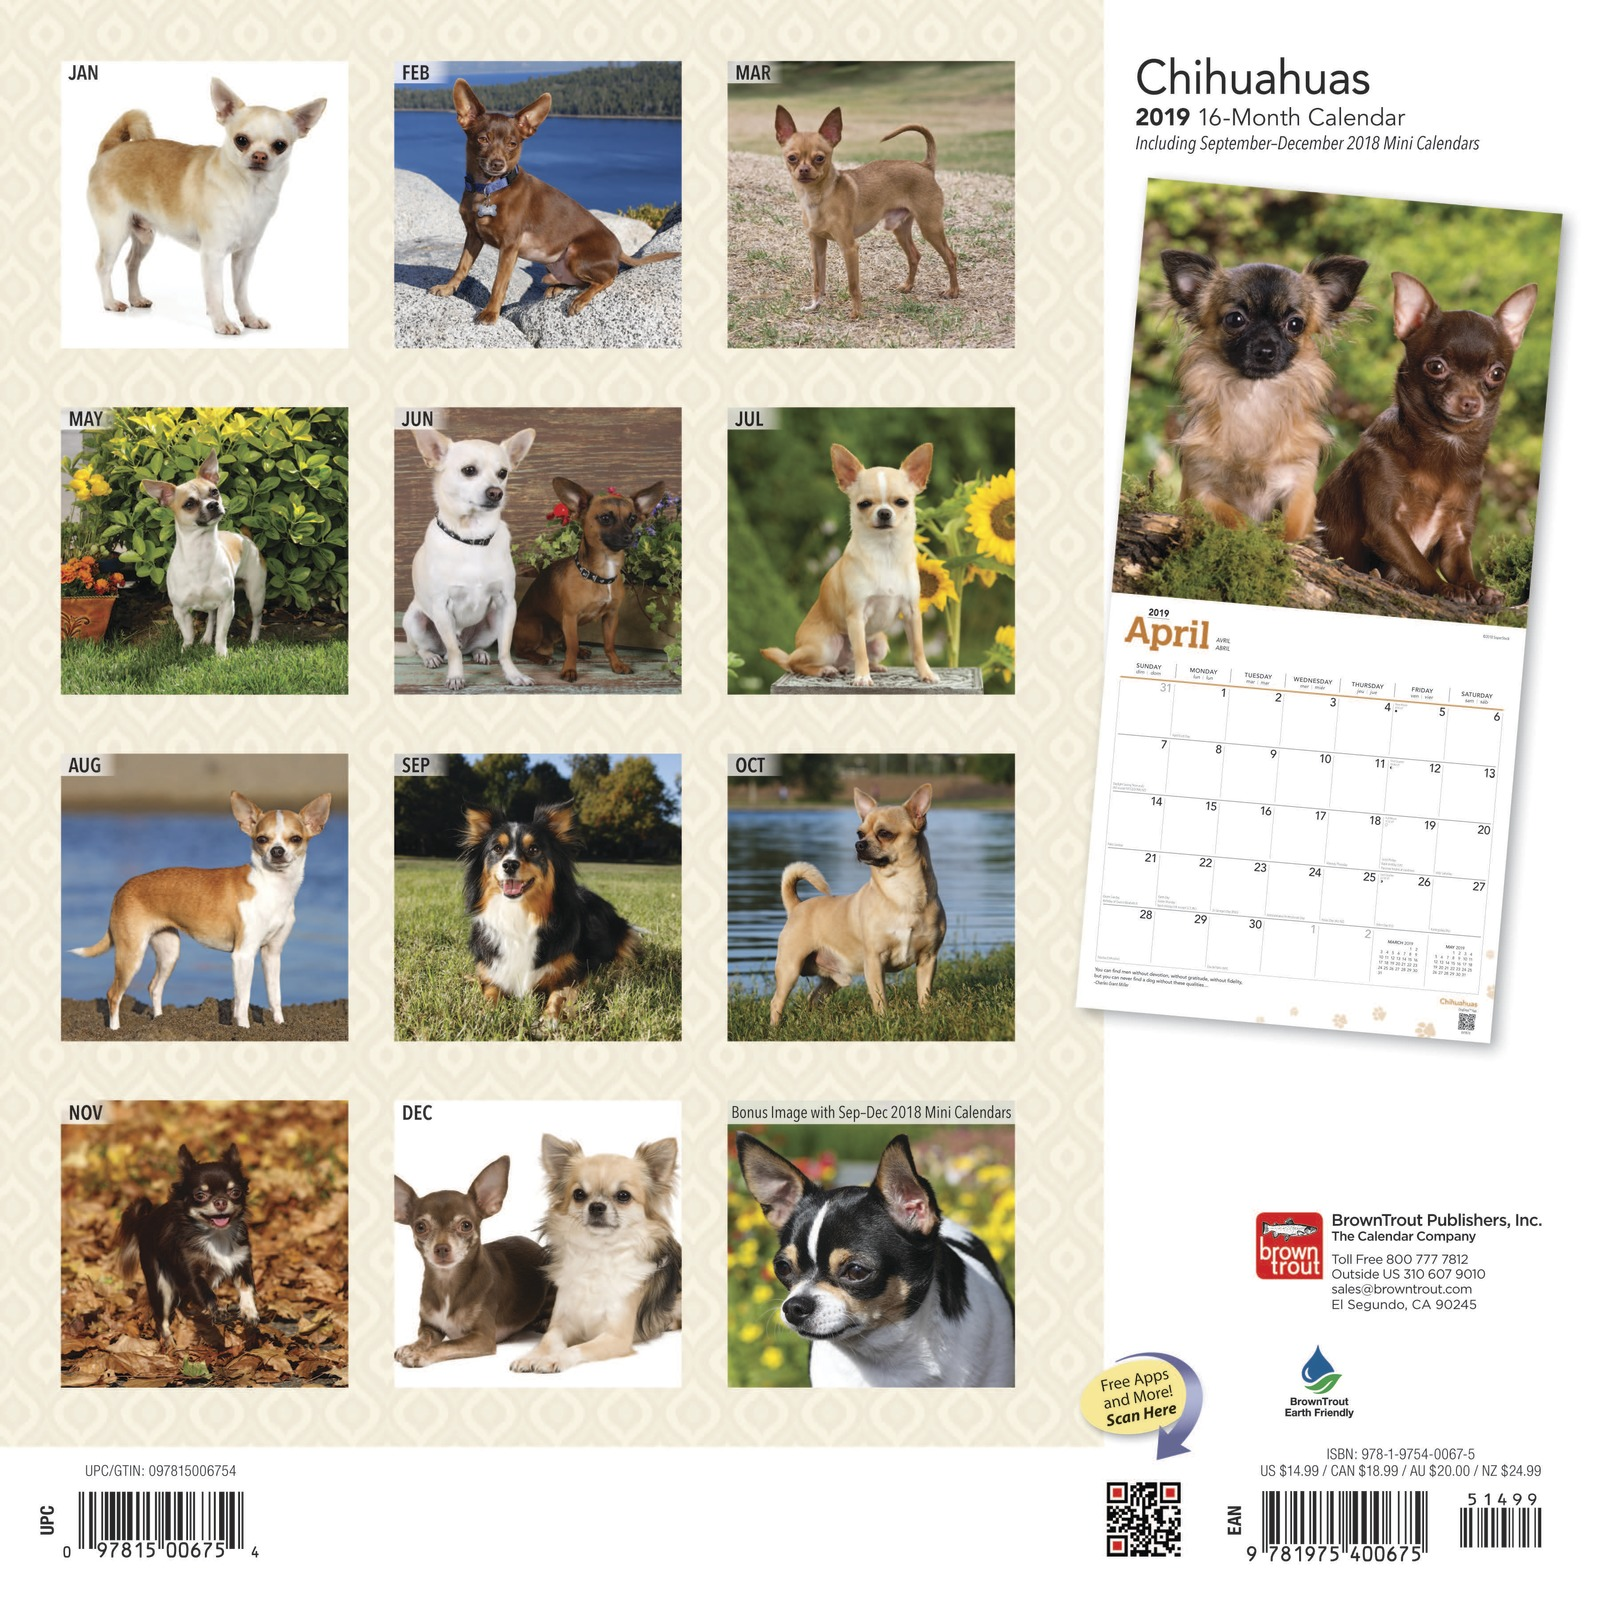 Chihuahuas 2019 Square Wall Calendar by Inc Browntrout Publishers image